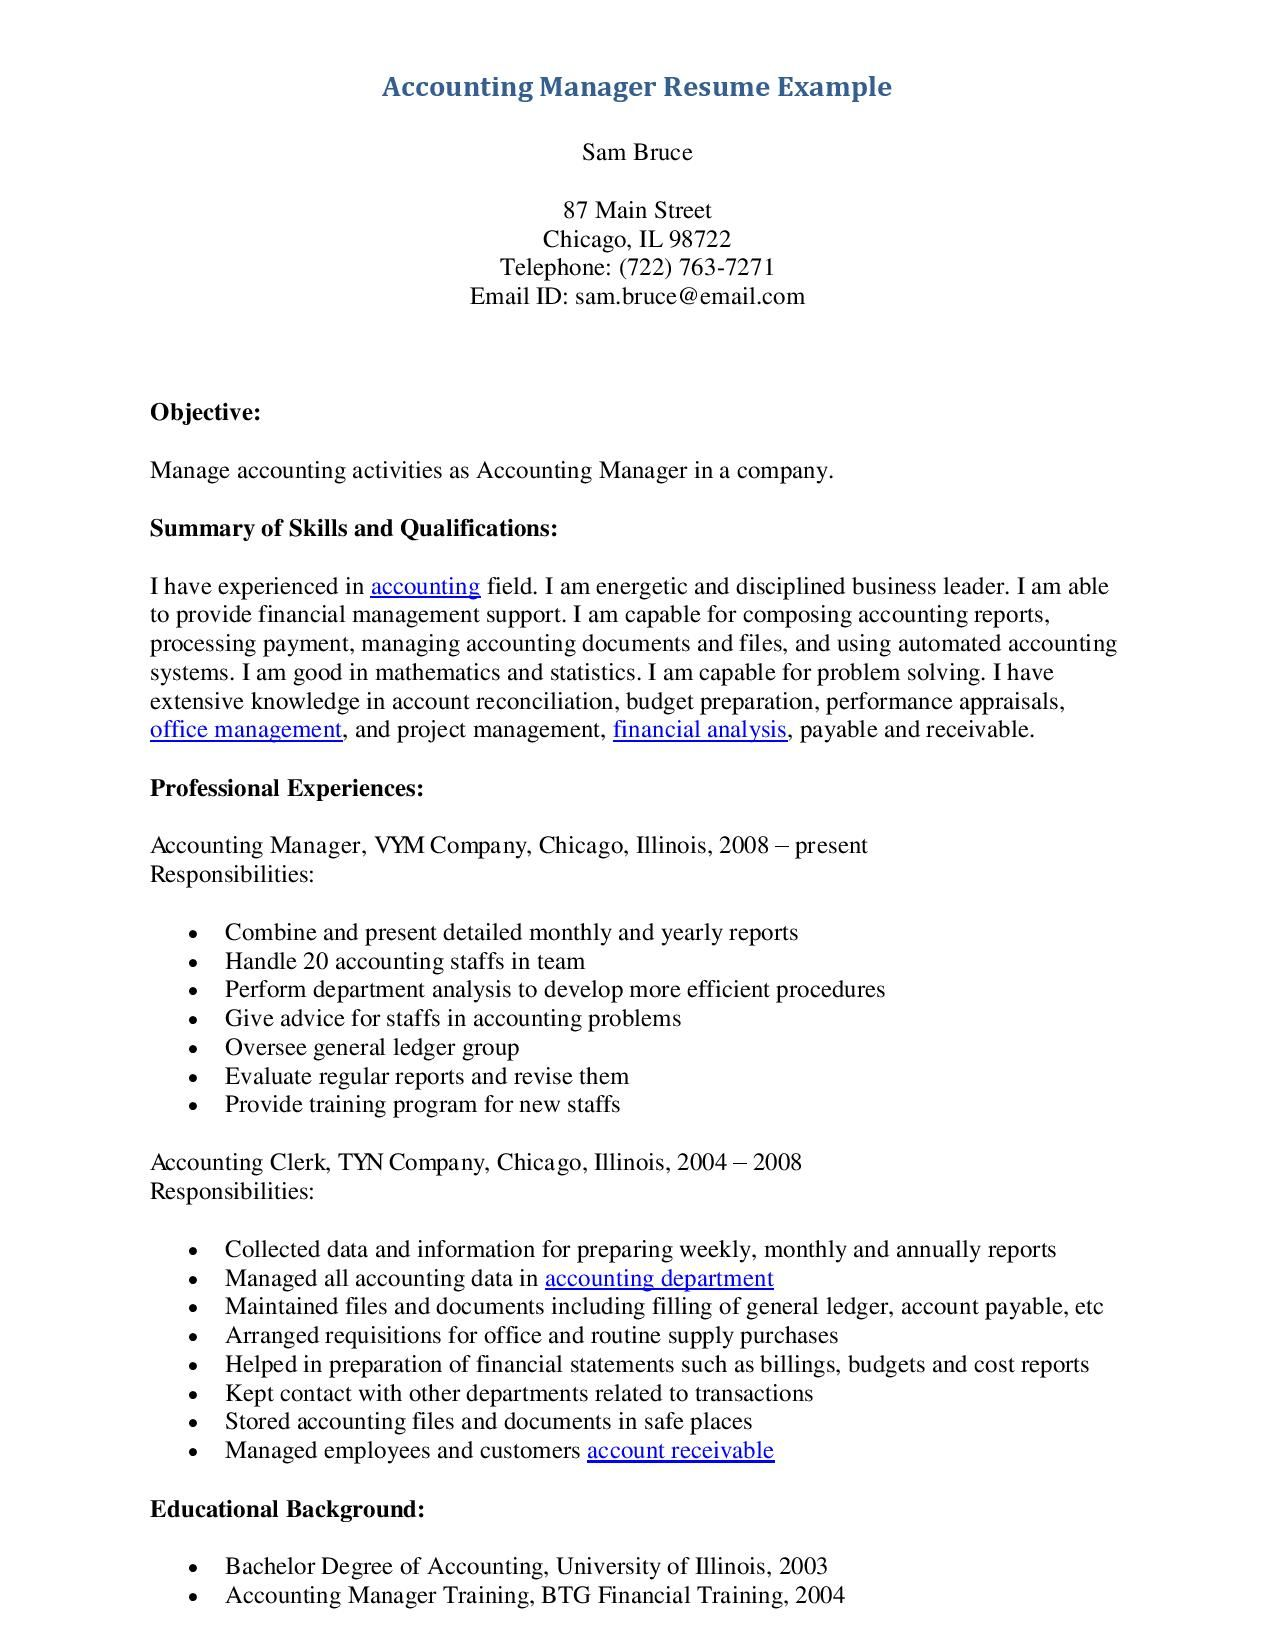 Example Accounting Manager Resume   Http://www.resumecareer.info/example  Accounting Manager Resume Examples